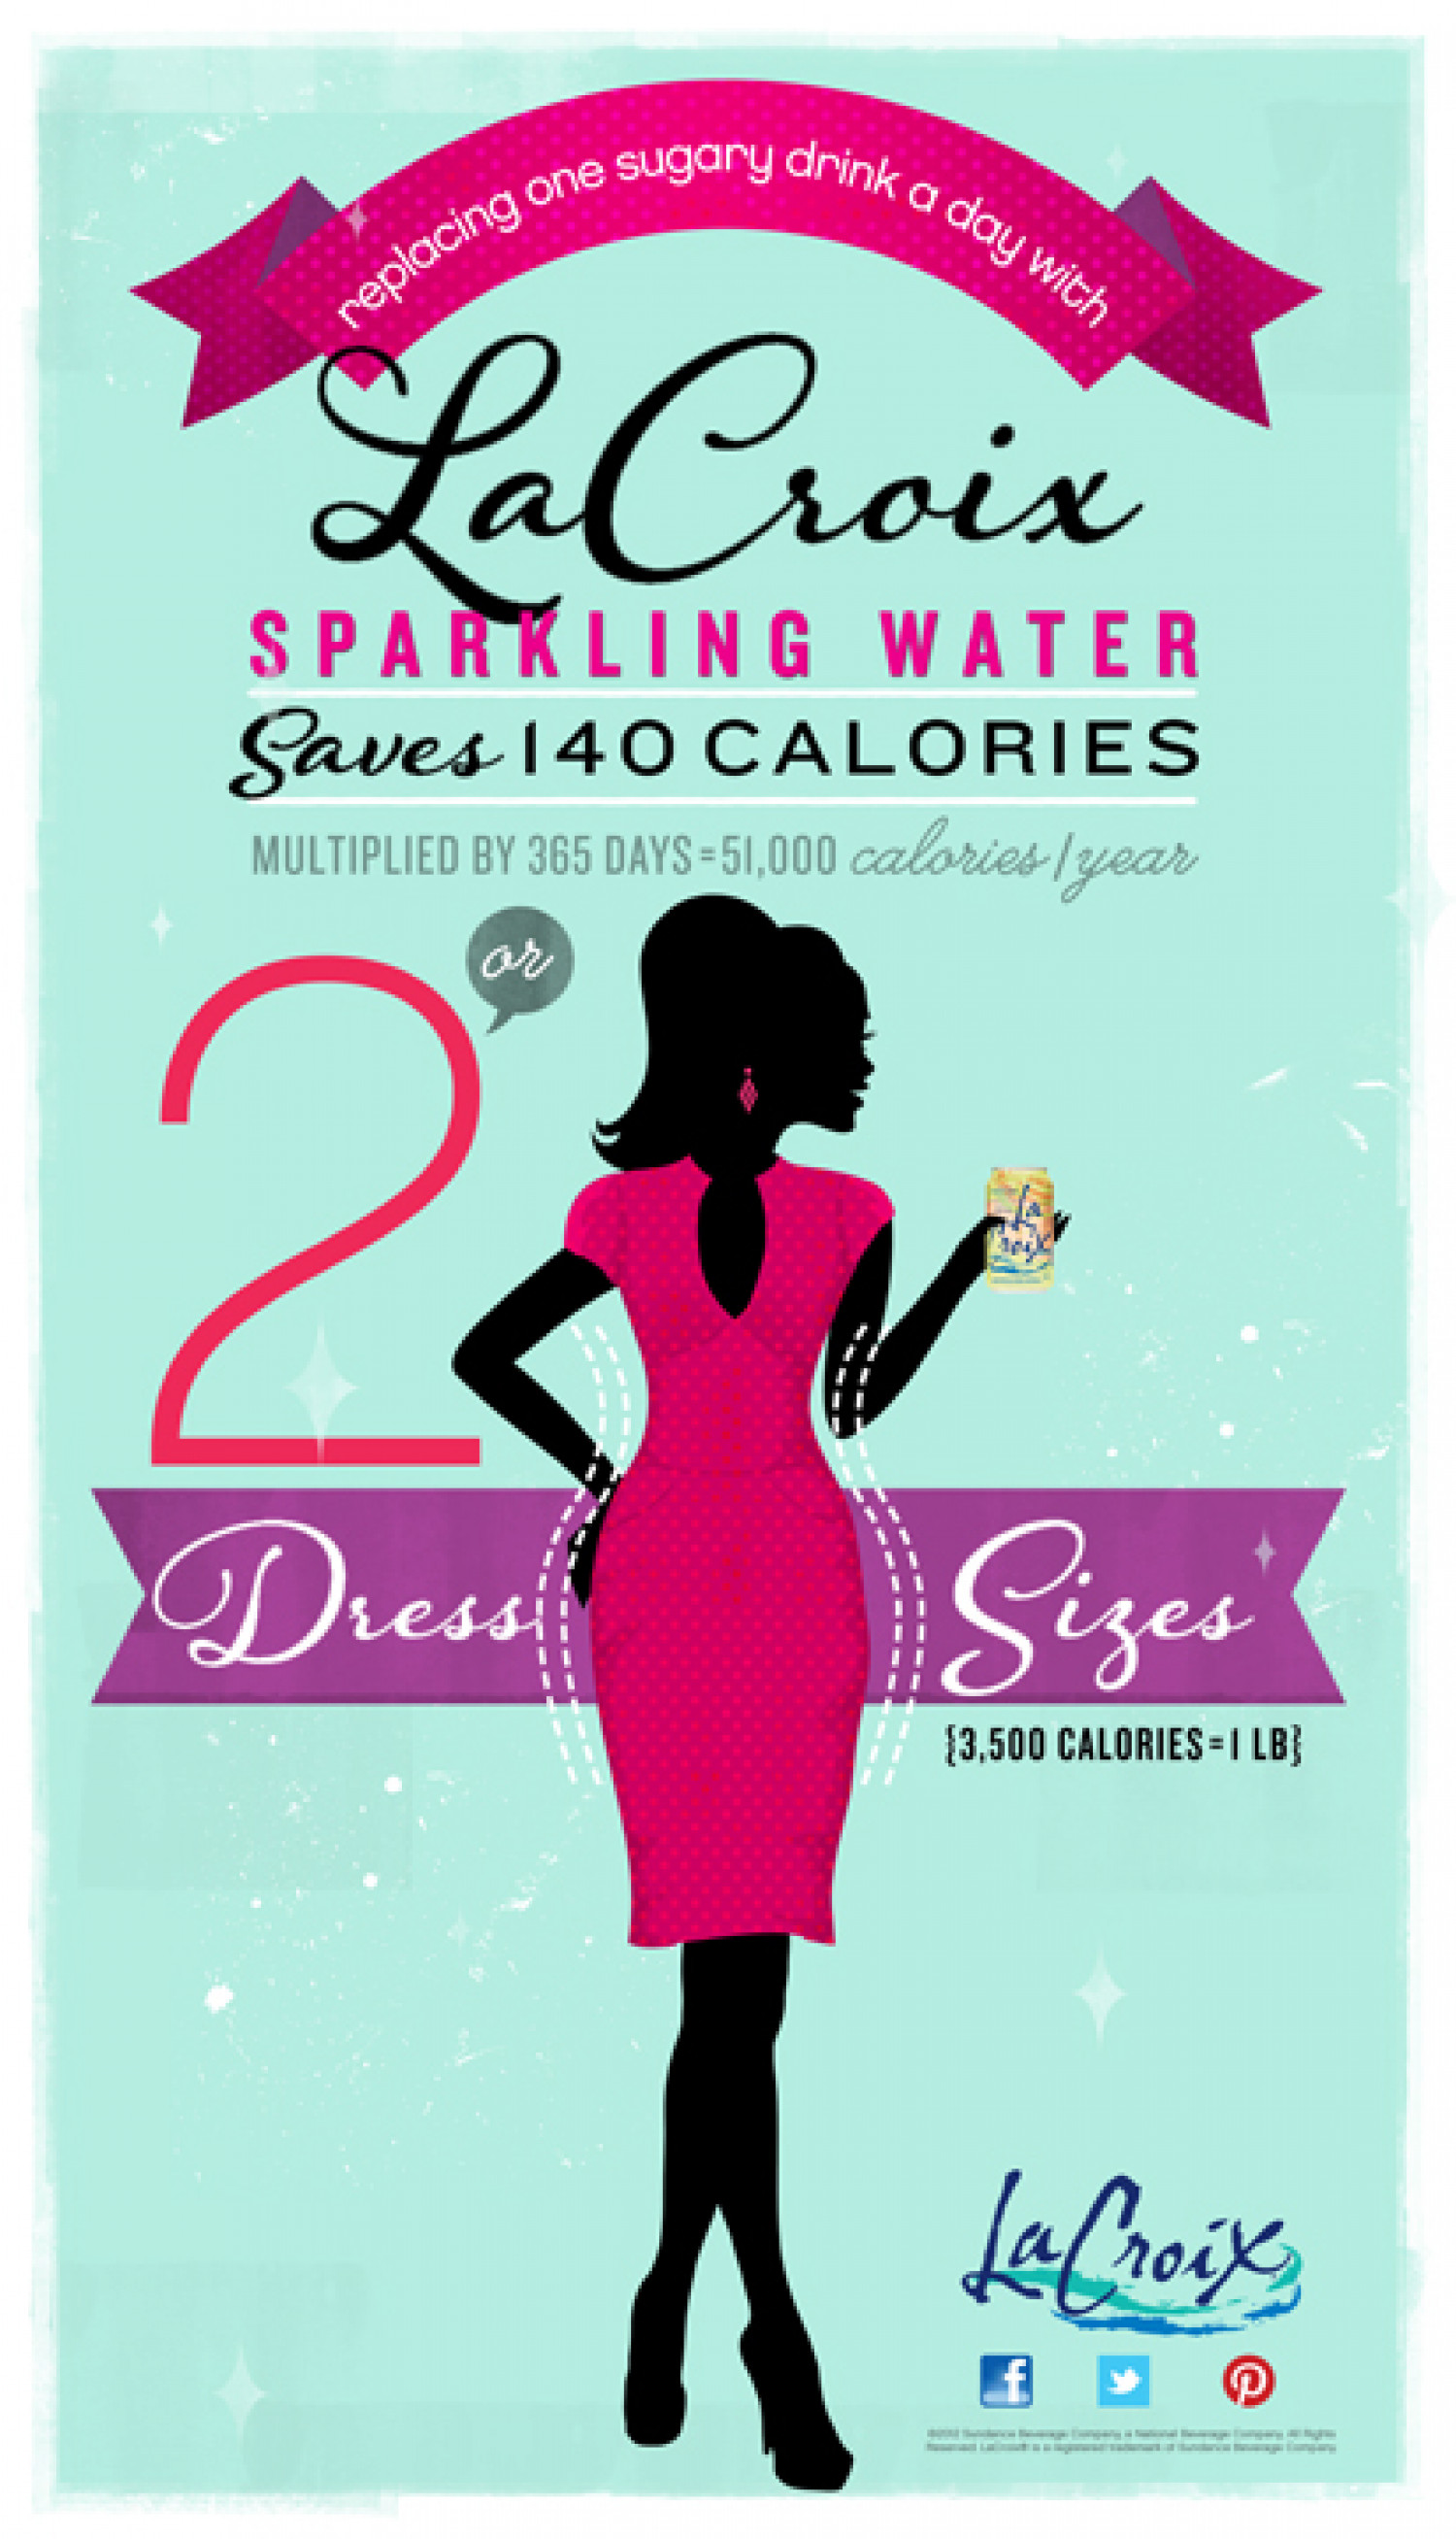 LaCroix Sparkling Water Infographic